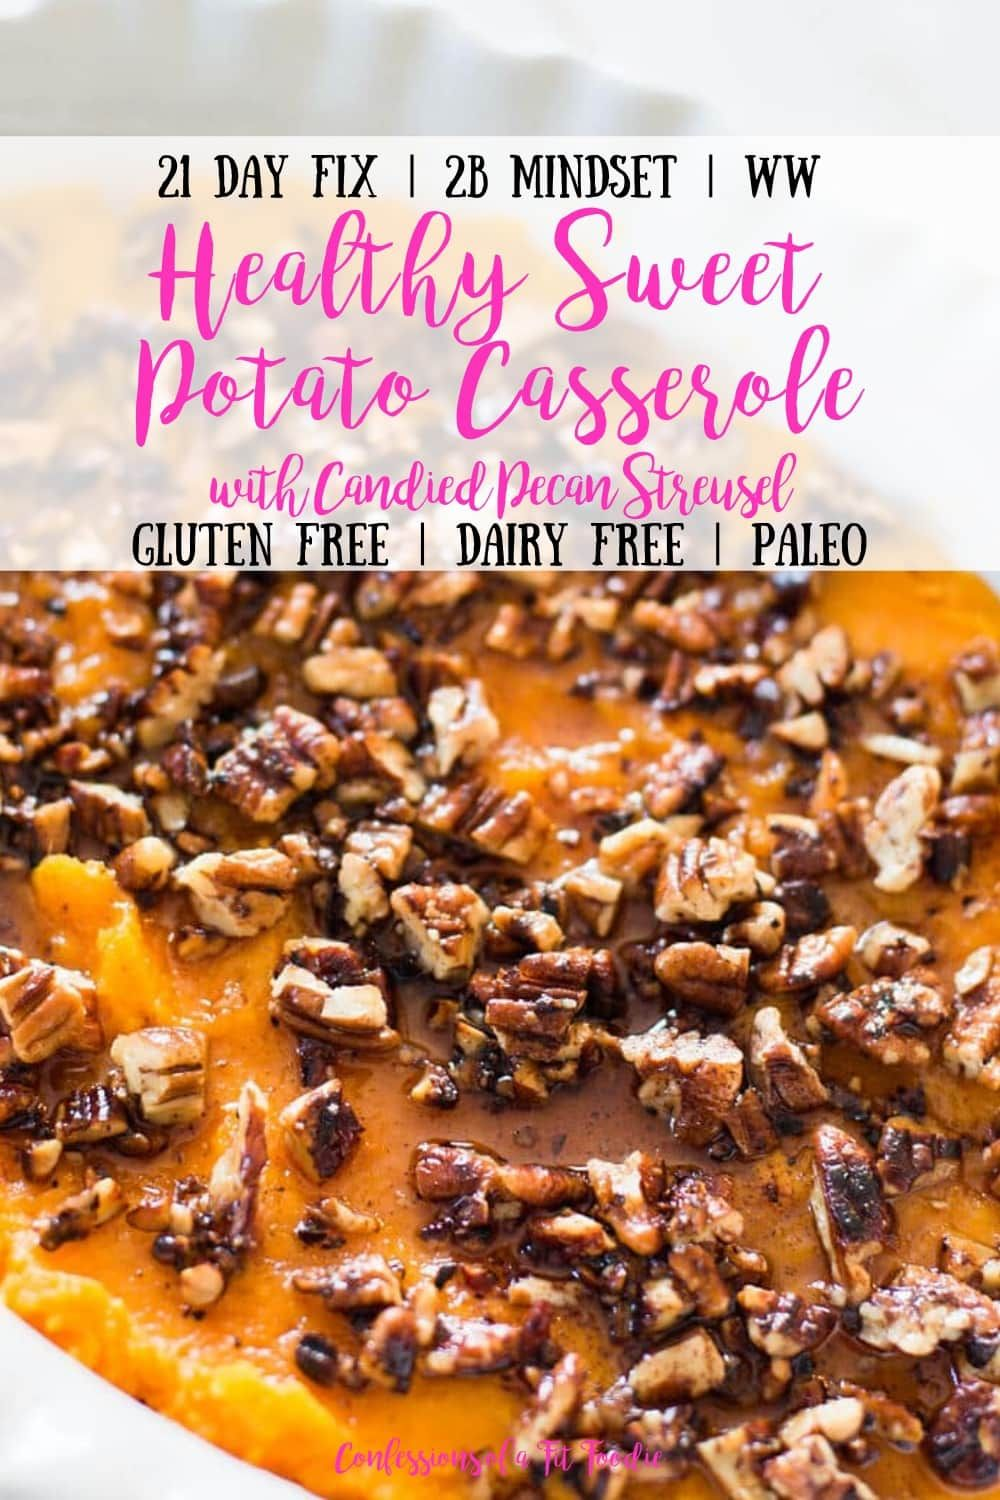 Healthy Sweet Potato Casserole [21 Day Fix | Gluten-free | Dairy-free | Paleo] - Confessions of a Fit Foodie